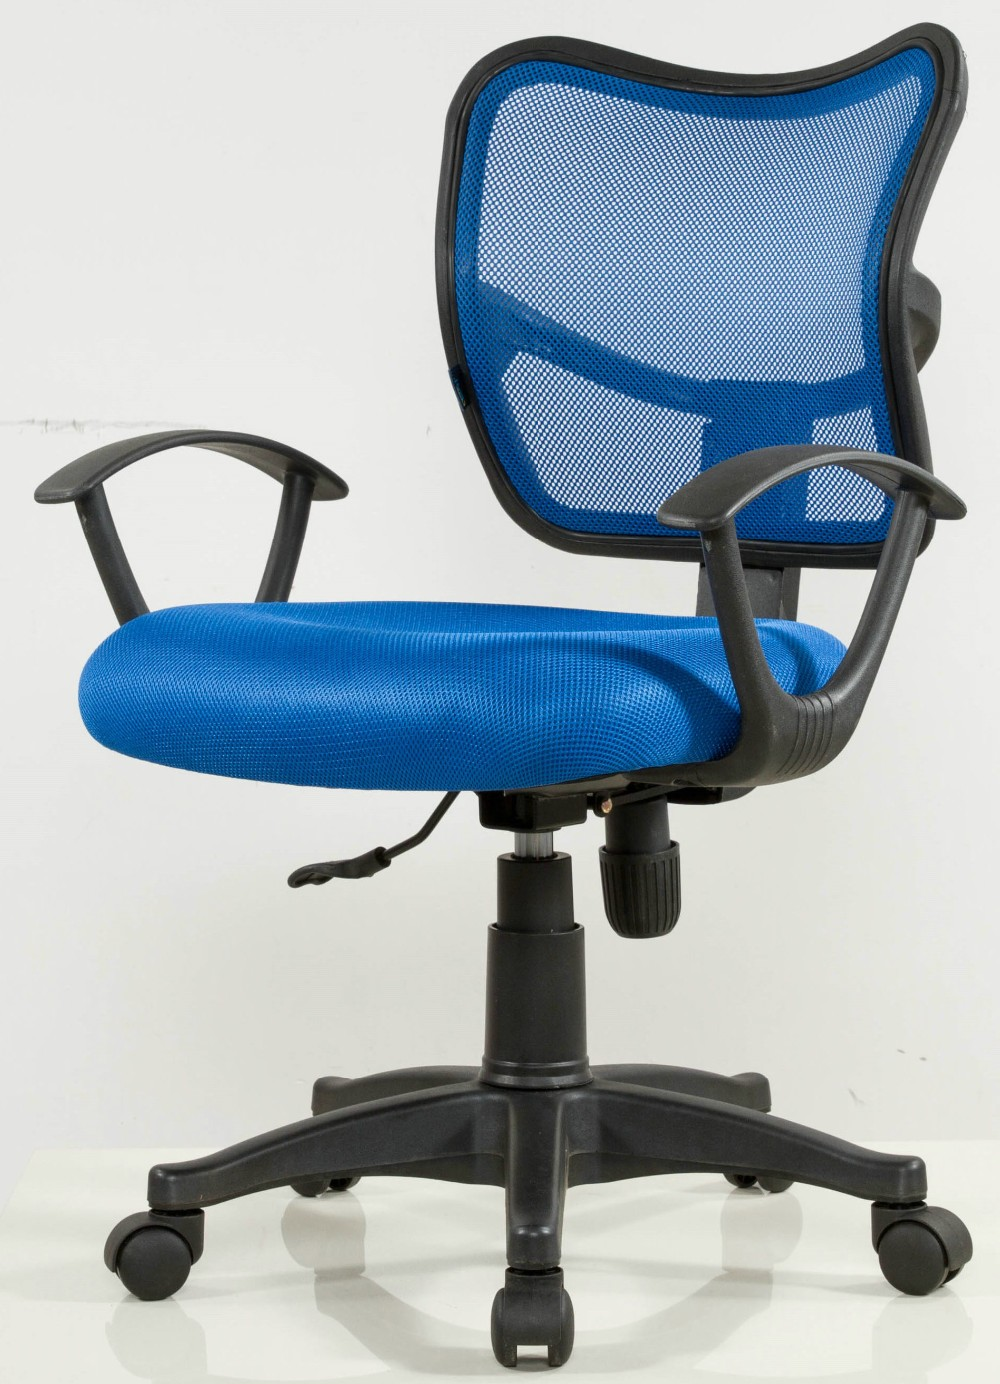 Low Price China Colorful Sewing Machine Chair Computer